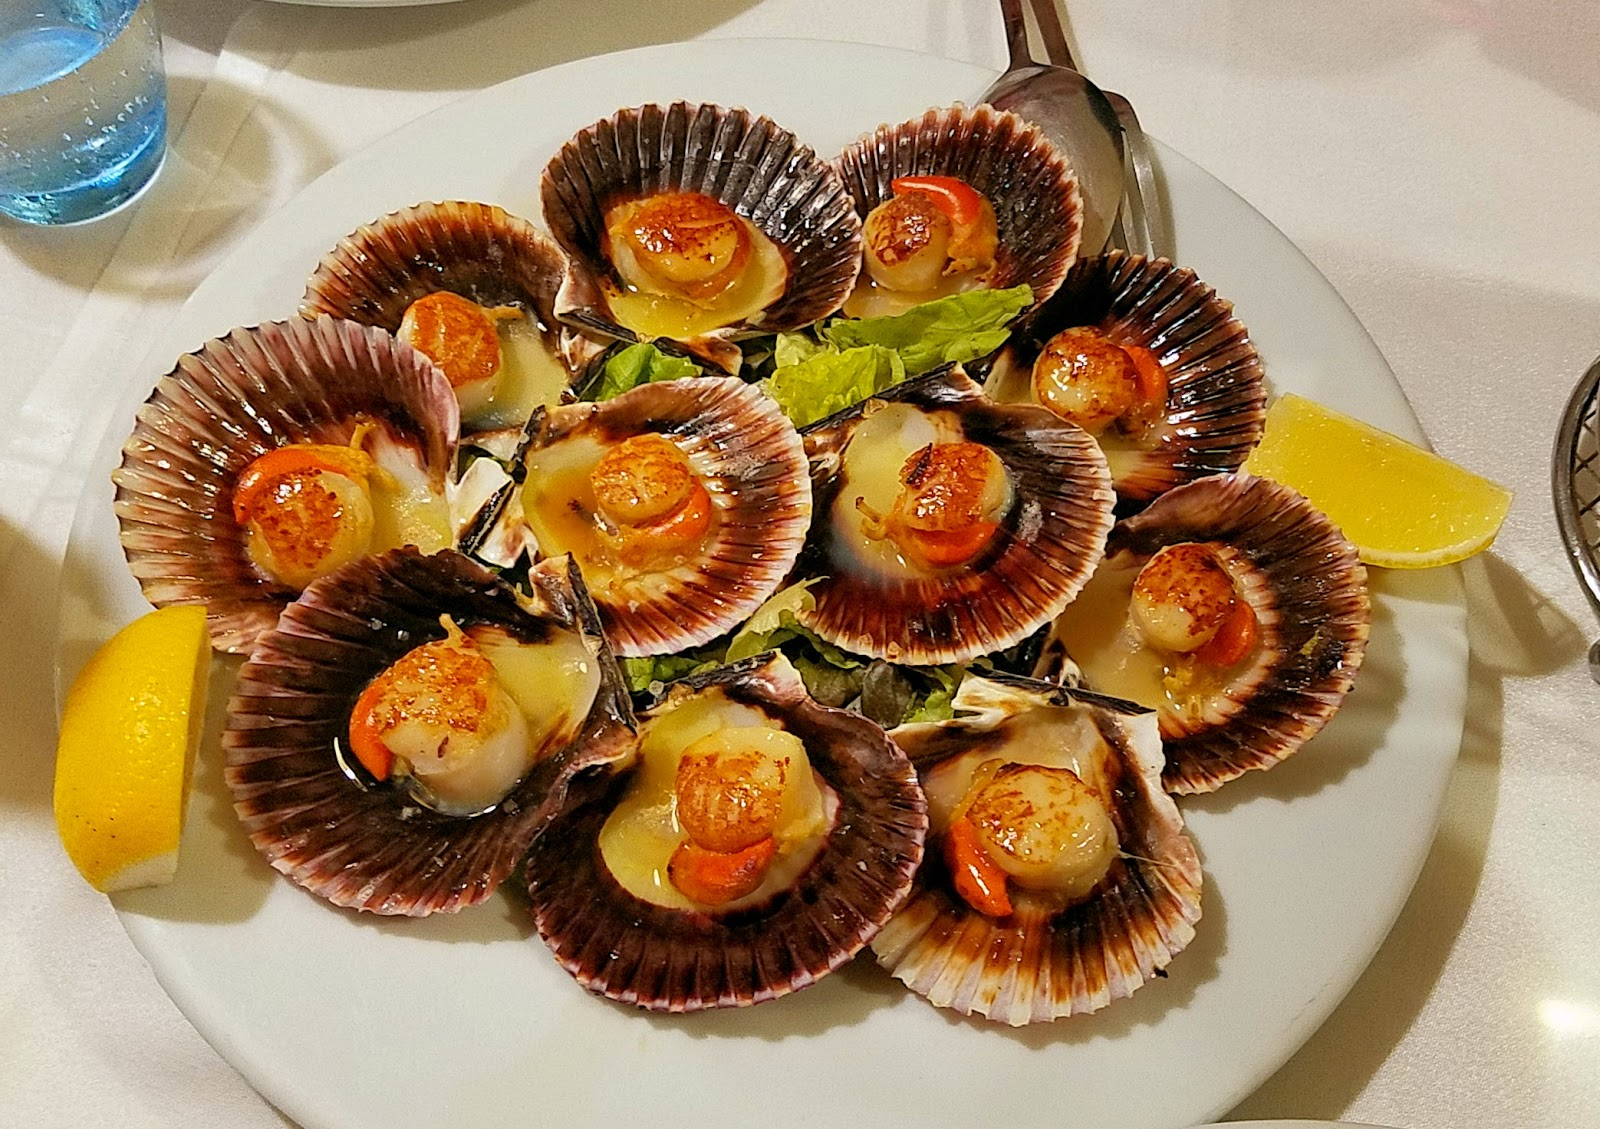 Scallops ... of course!